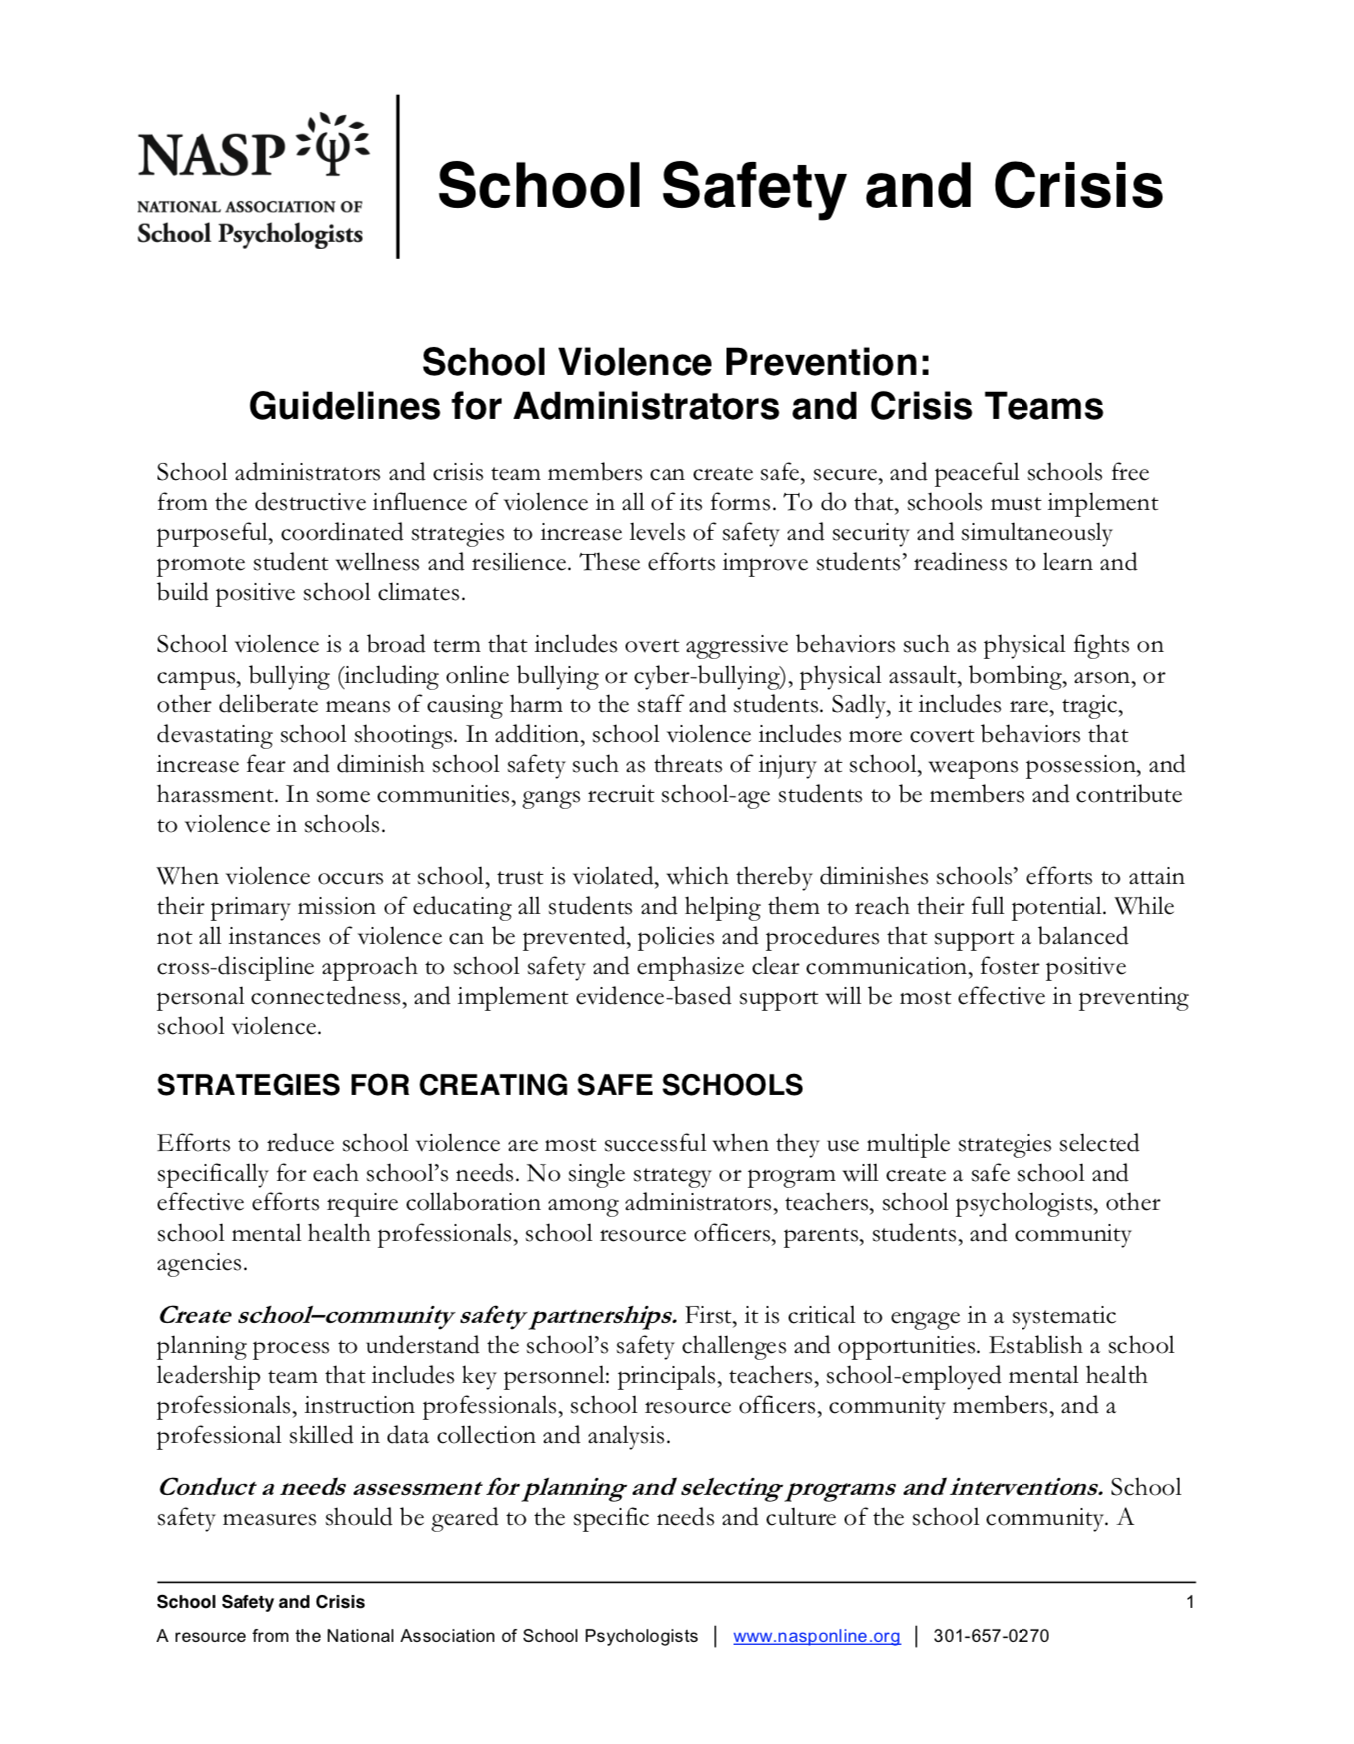 School Violence Prevention Guidelines For Administrators And Crisis